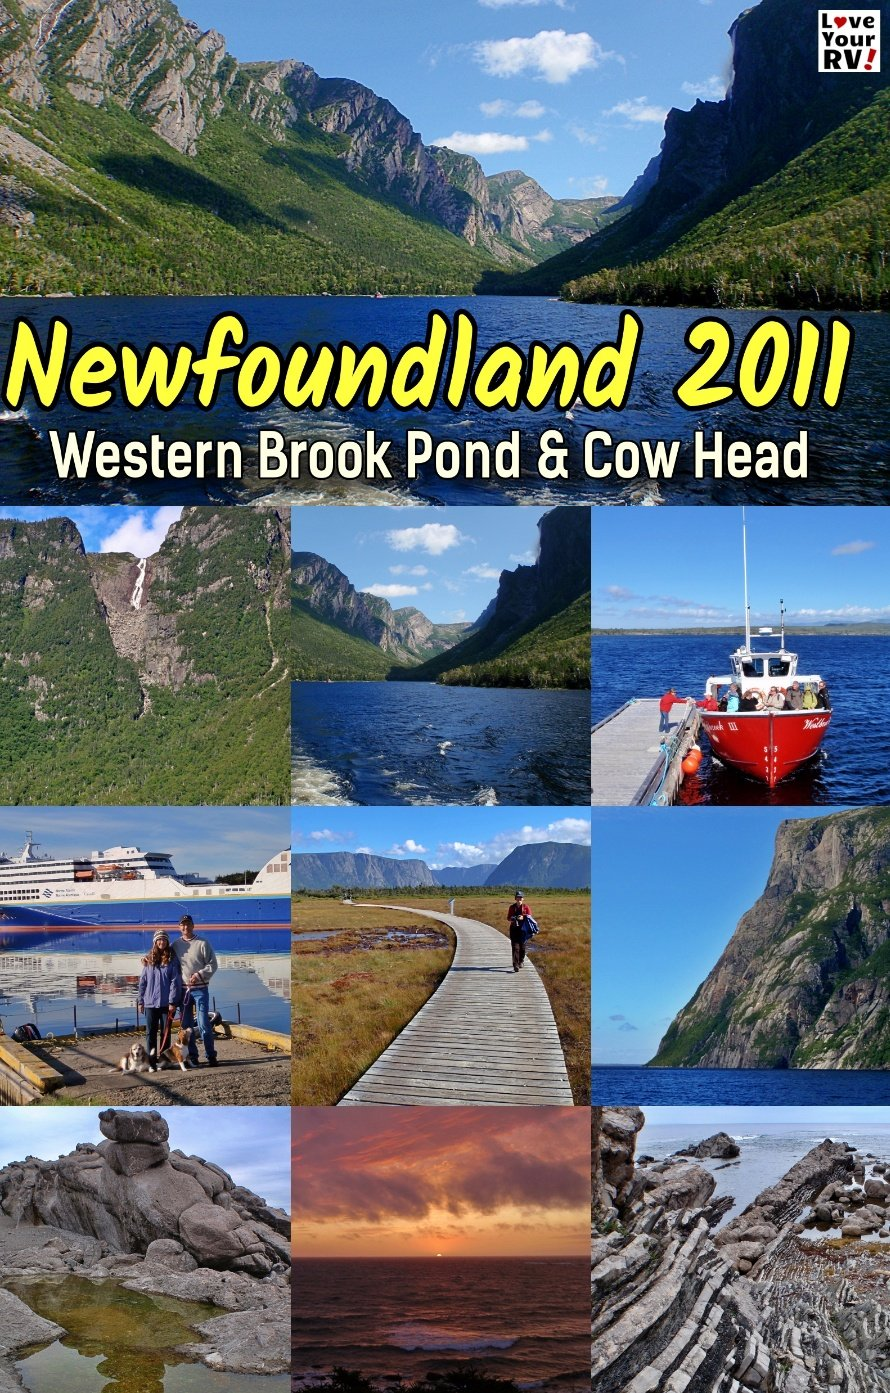 Boat Tour of Western Brook Pond and HIke out the Cow Head Peninsula Newfoundland Throwback Video Sept 2011